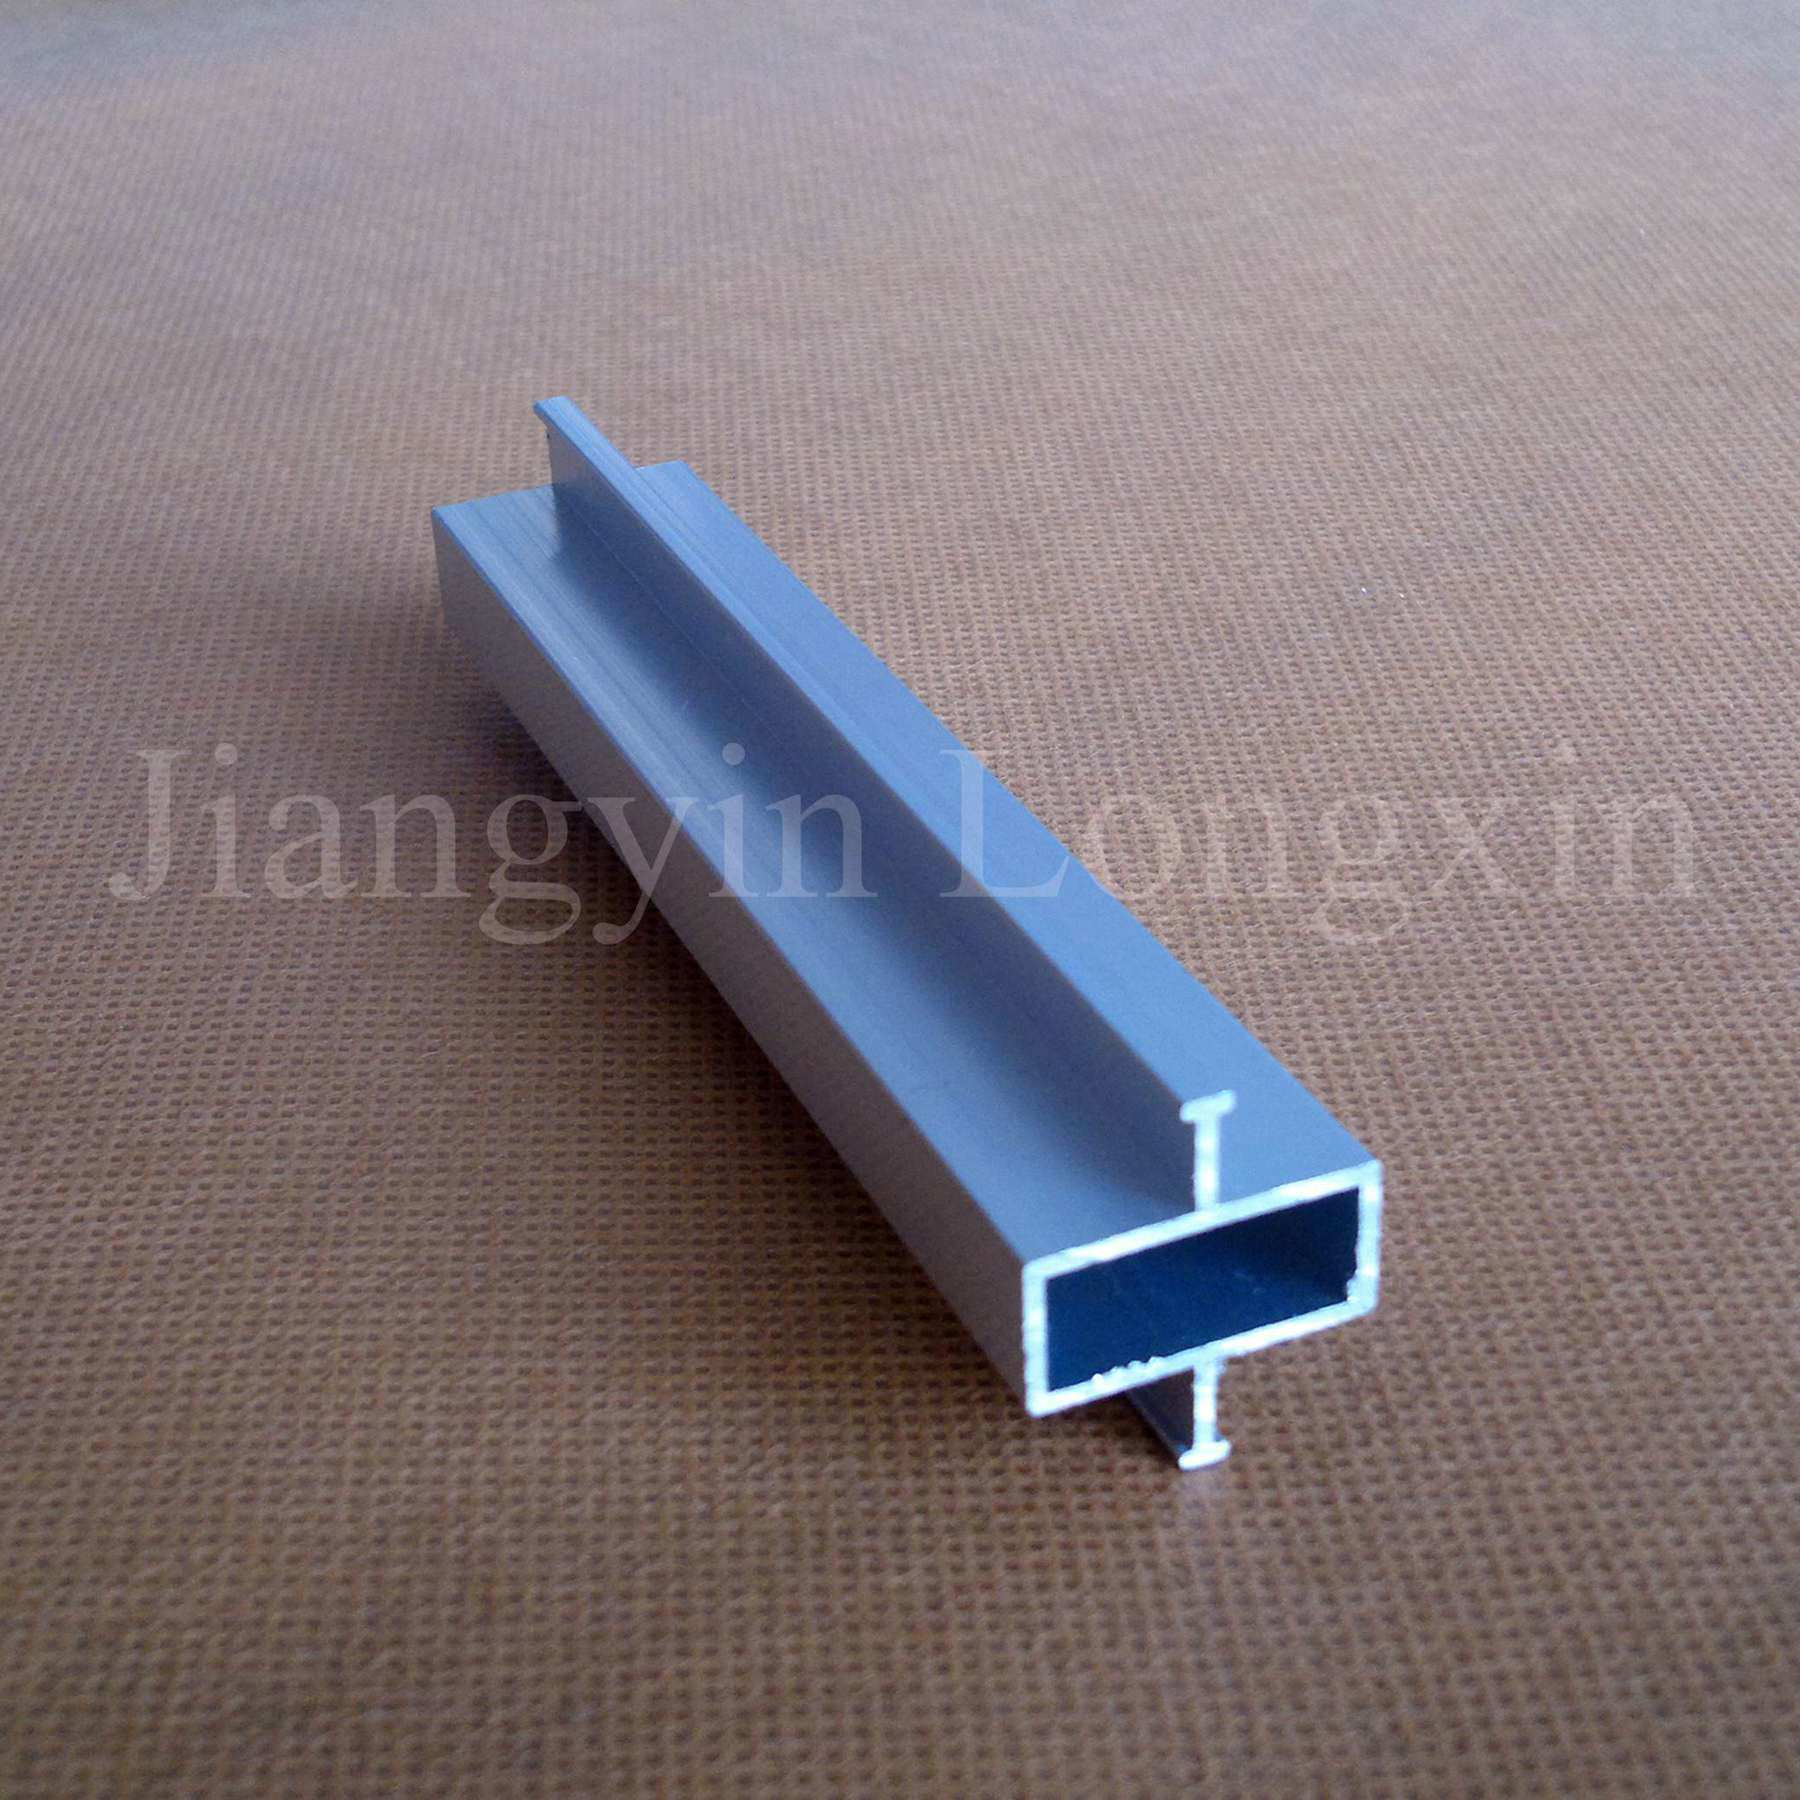 Silver Anodized Aluminum Profile for Connection